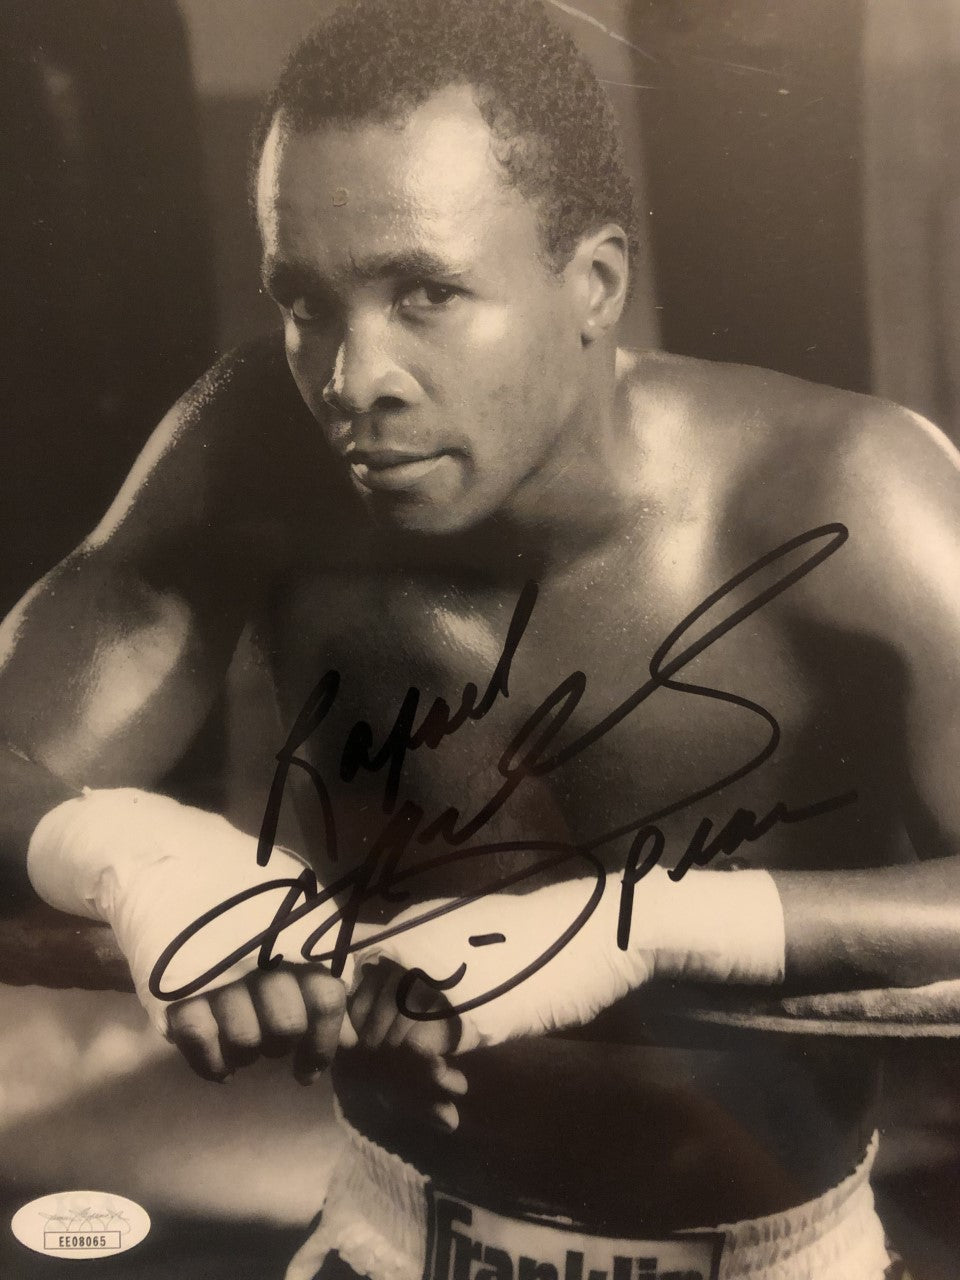 Sugar Ray Leonard Signed 8x10 Photo Full name spelled out, Rare